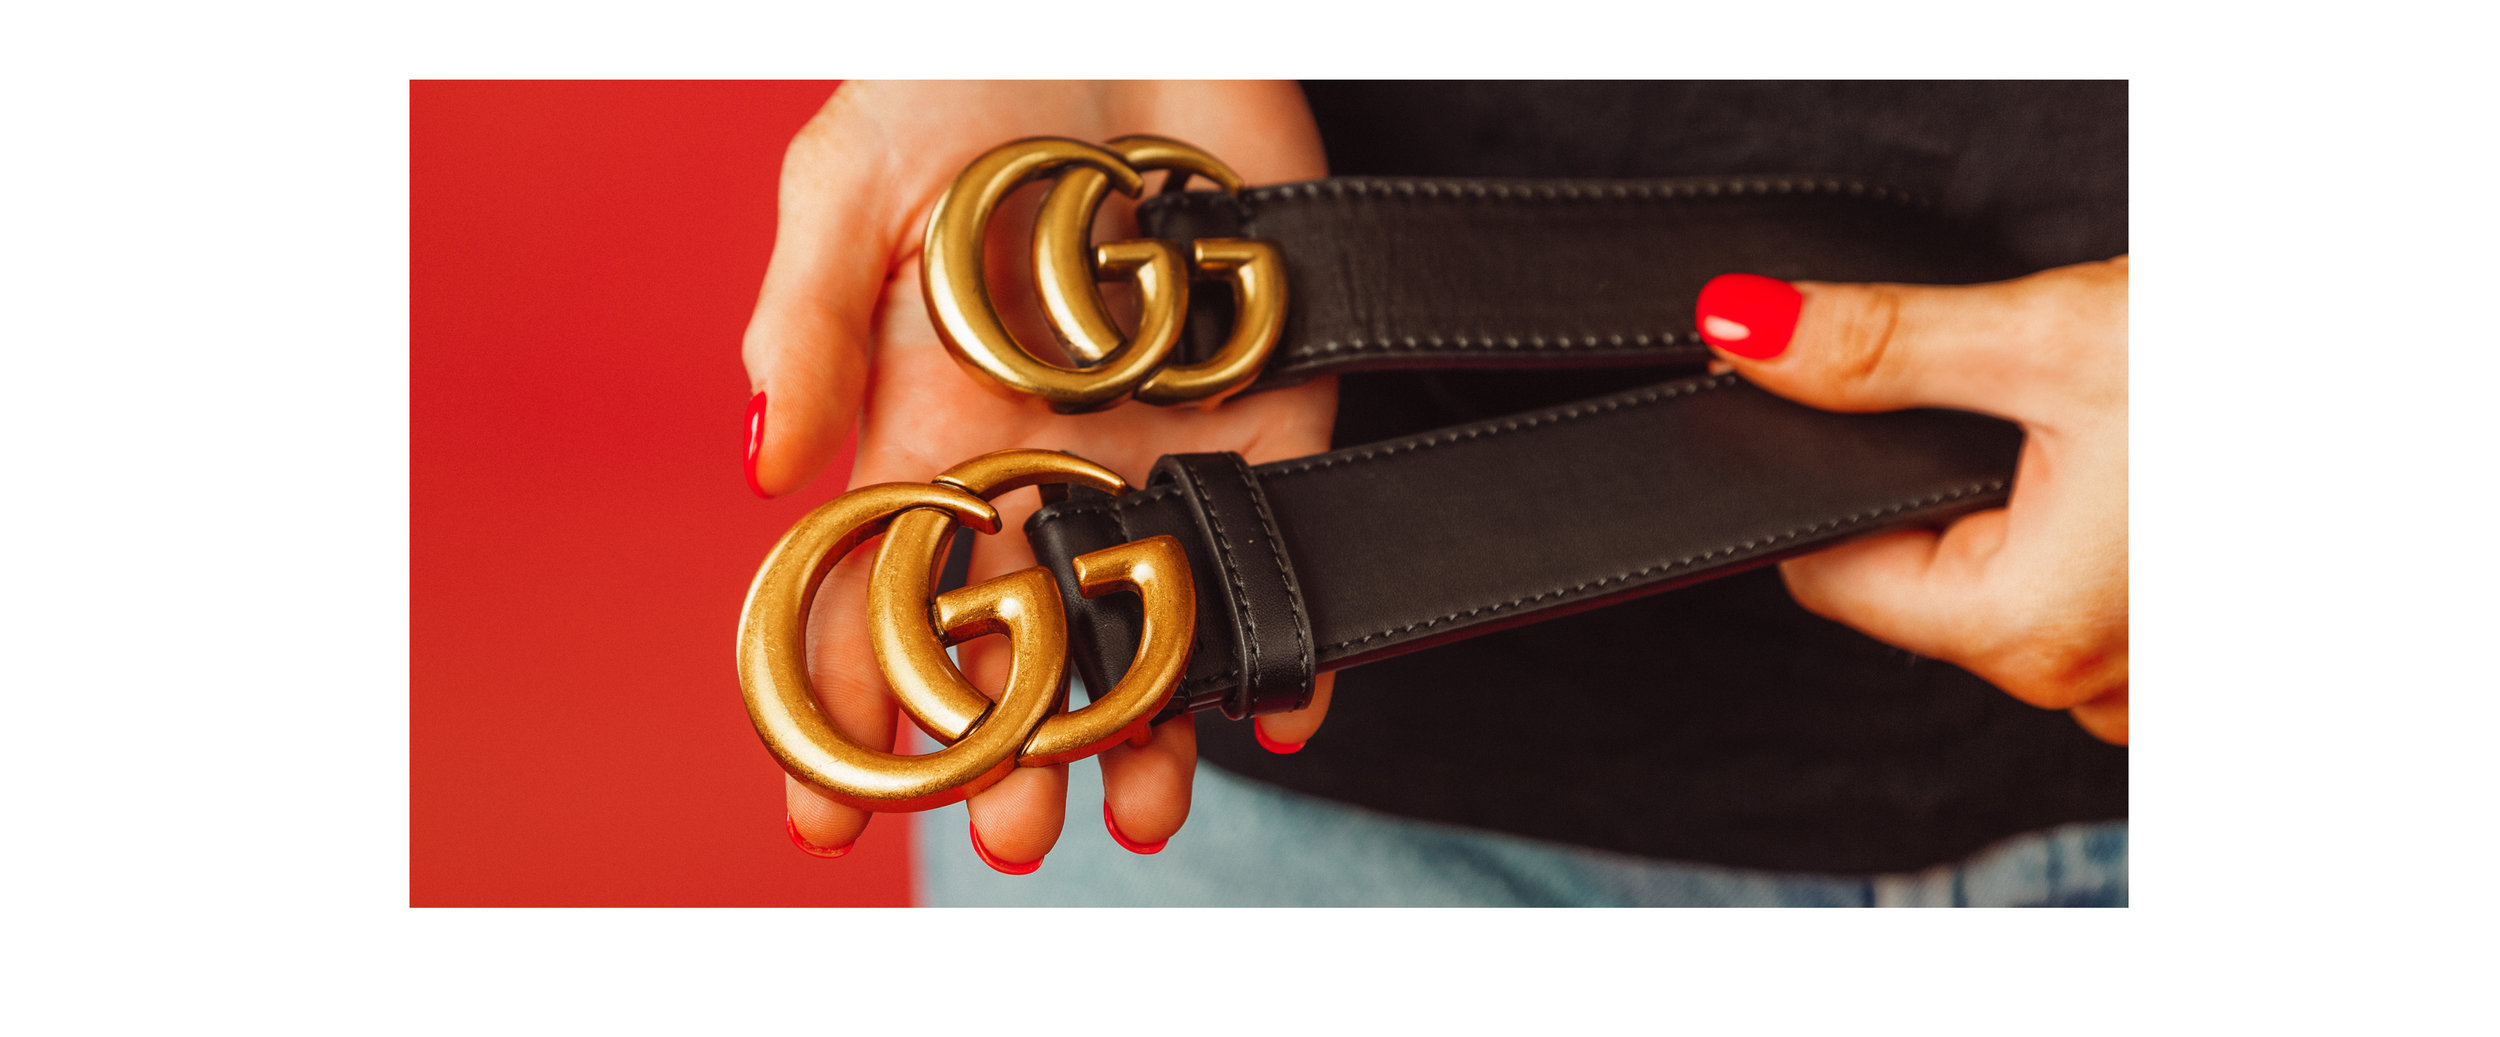 The Difference Between Real And Fake Gucci Belts A Little Bit Of